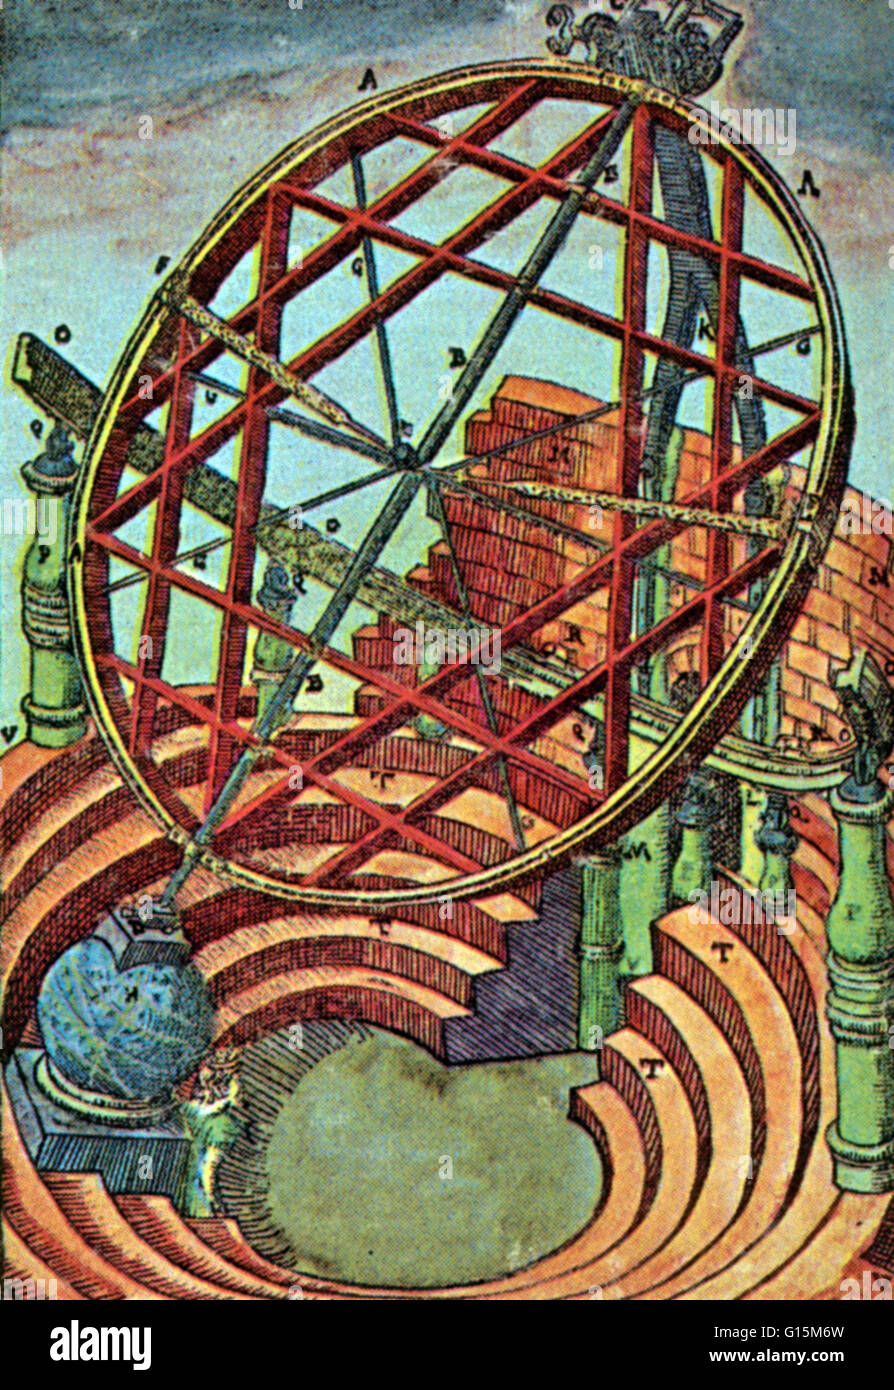 Tycho Brahe's equatorial armillary, which was about 16 feet high and had its own enclosure in Brahe's observatory. - Stock Image